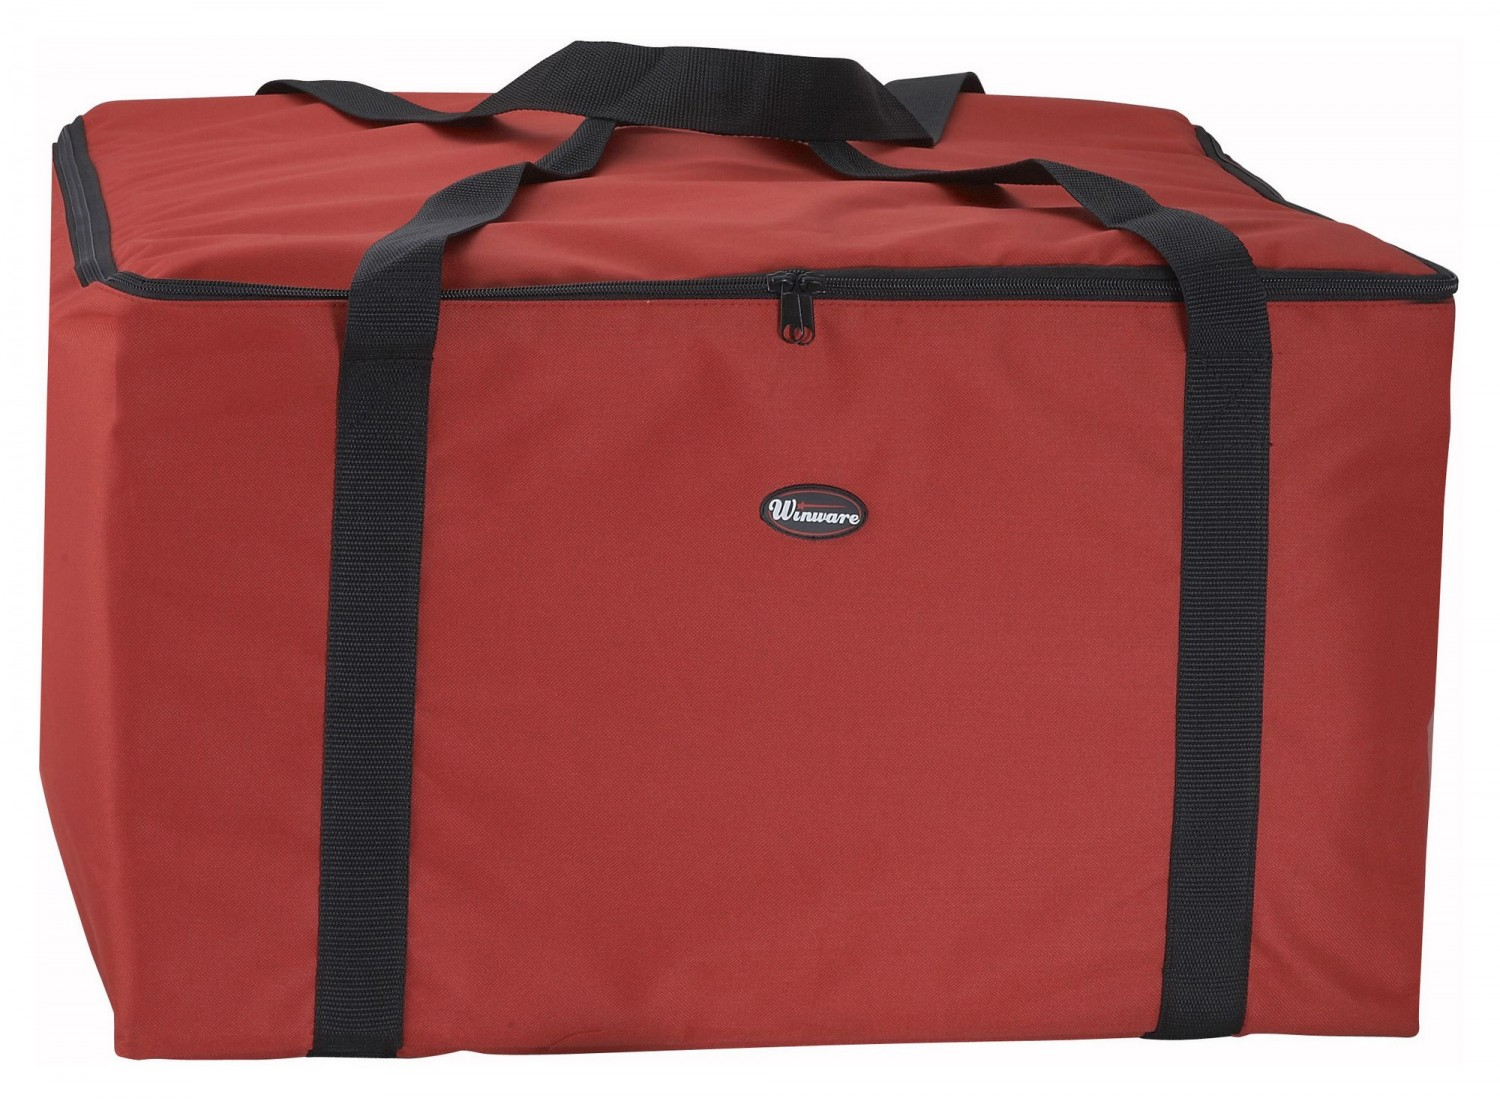 Winco Bgdv 22 Pizza Delivery Bag